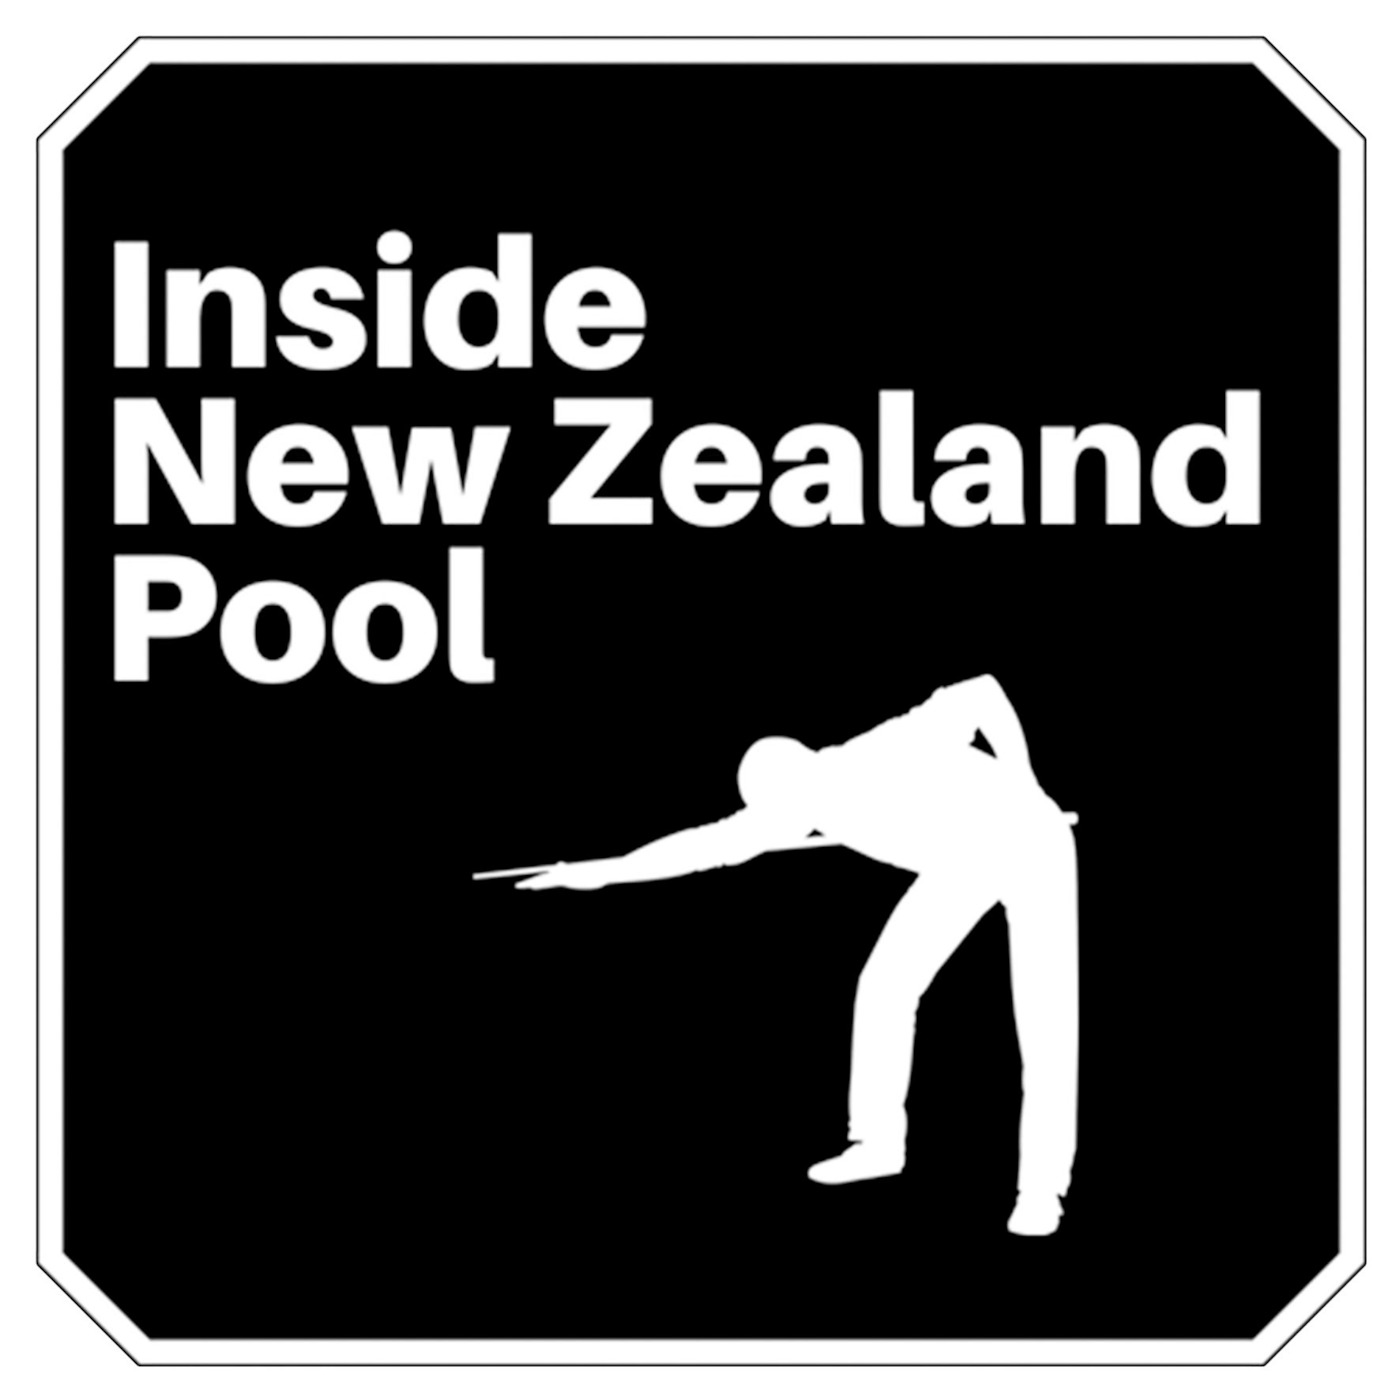 Episode 18 (Mark And Samantha Cottingham) Inside New Zealand